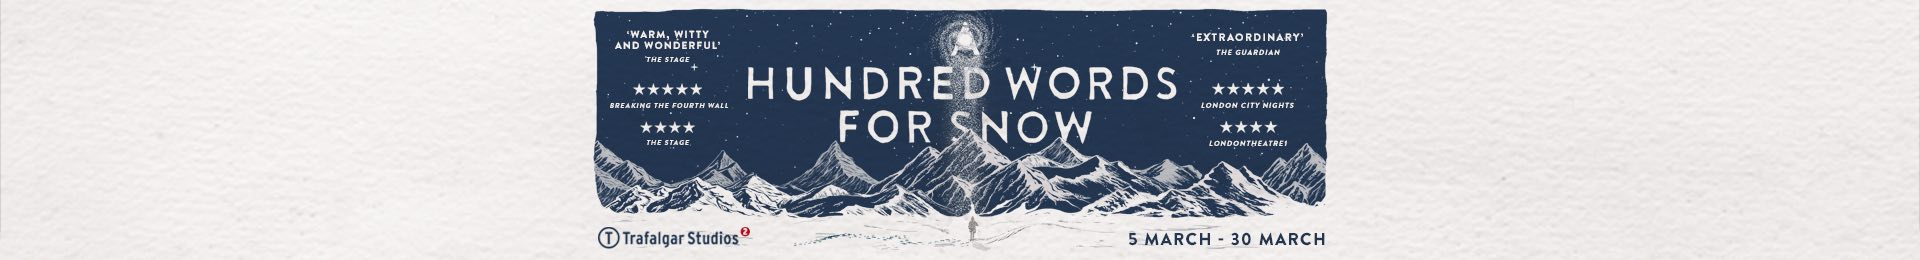 A Hundred Words for Snow banner image